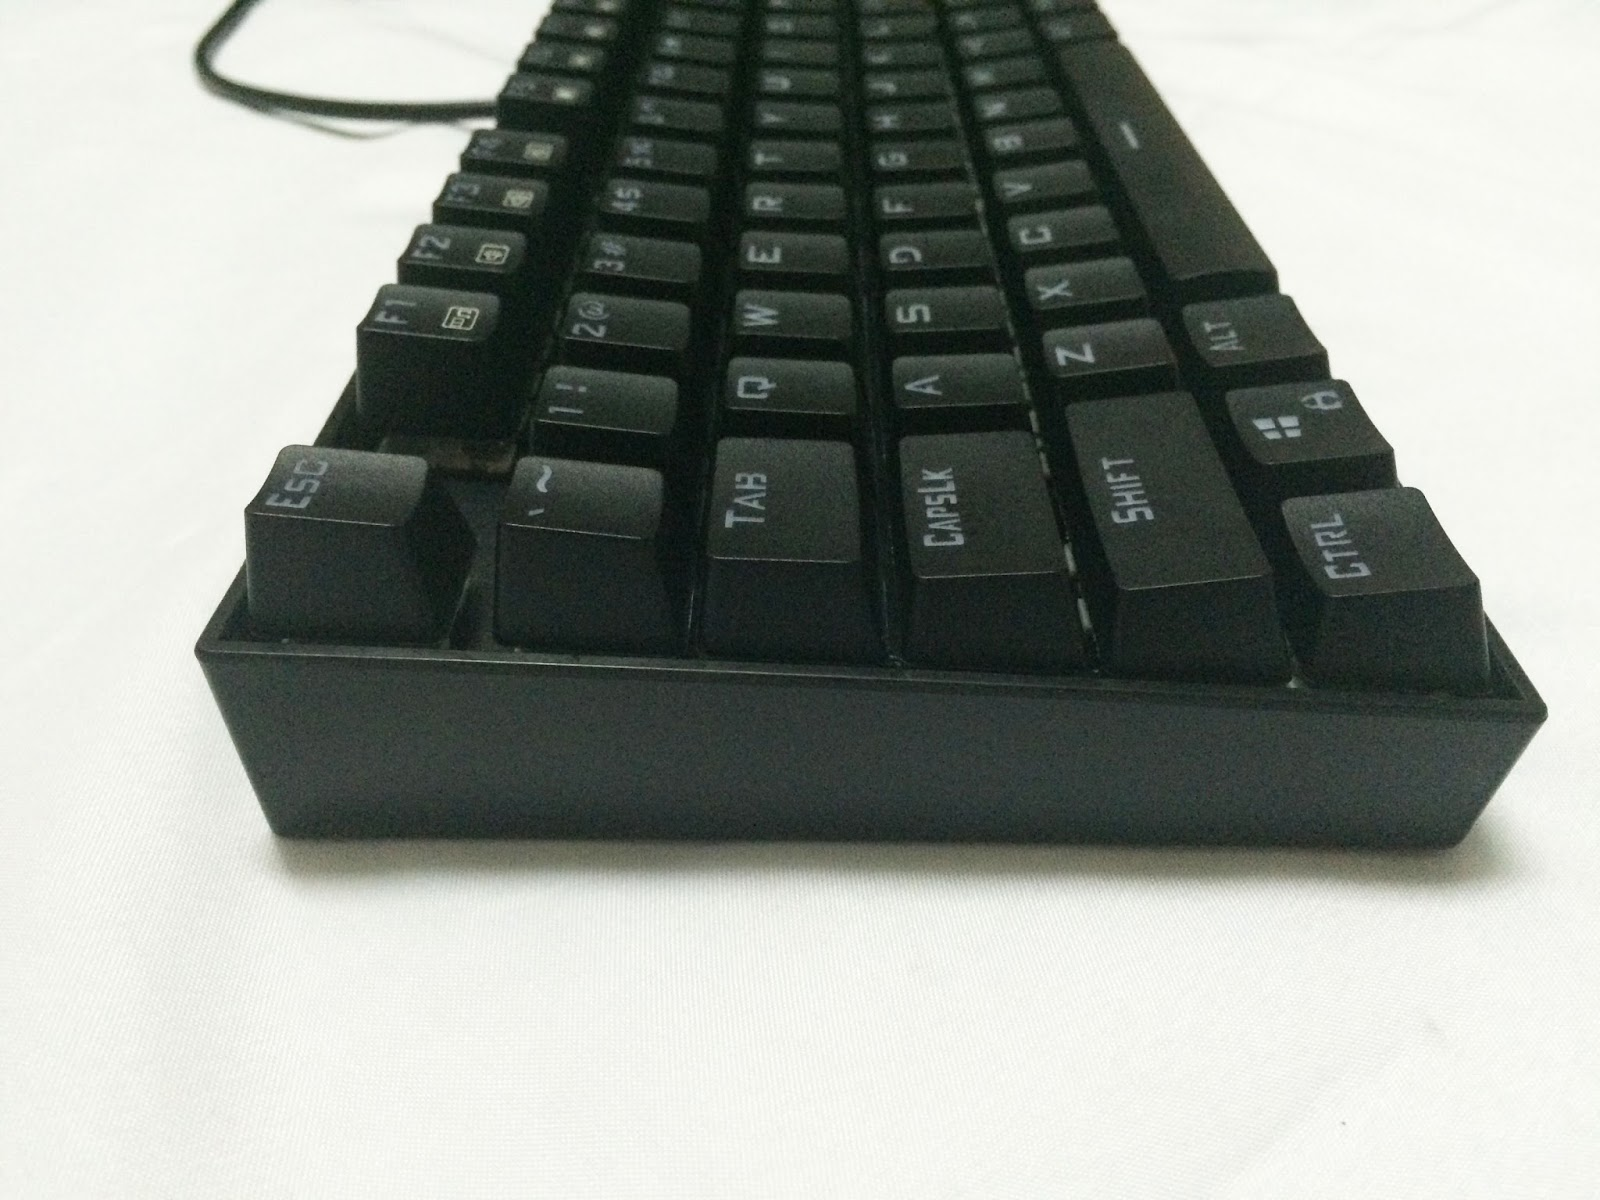 What Is Plastic Ring With Redragon Keyboard